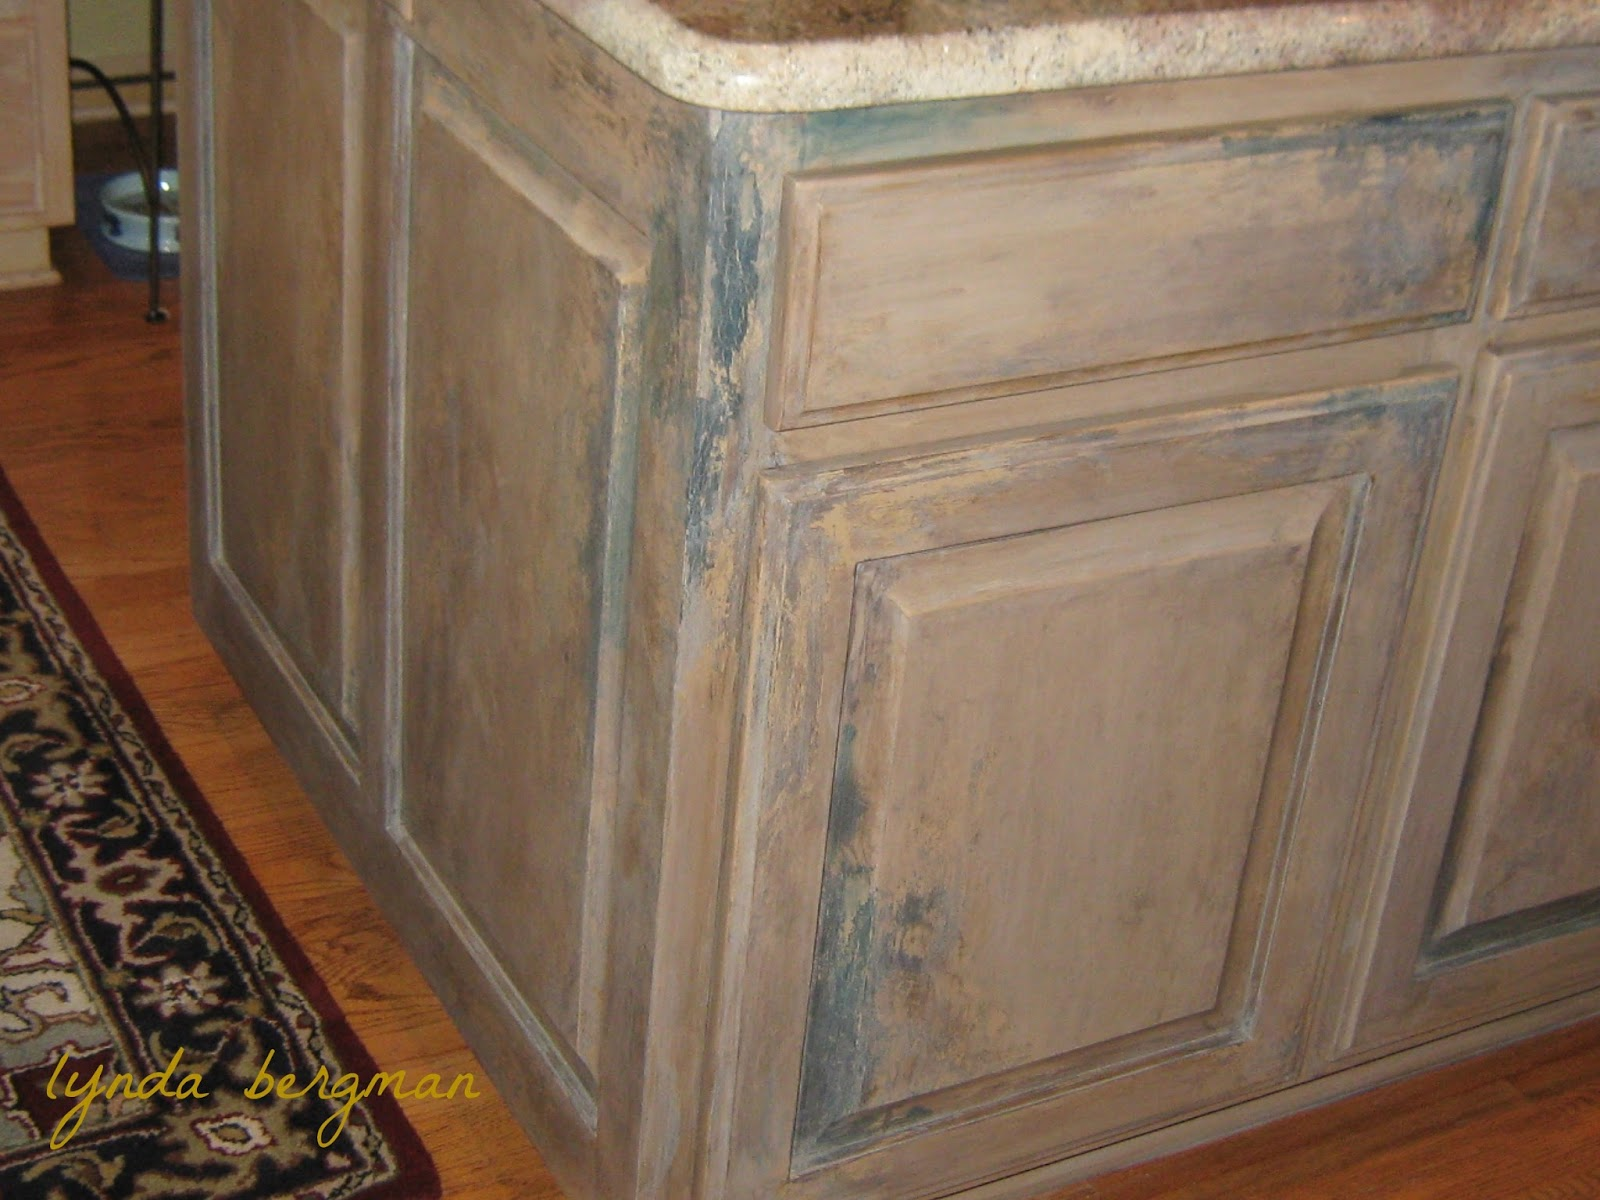 Best Kitchen Gallery: Lynda Bergman Decorative Artisan Painting A Distressed Aged of Pickled White Kitchen Cabinet Stains on rachelxblog.com